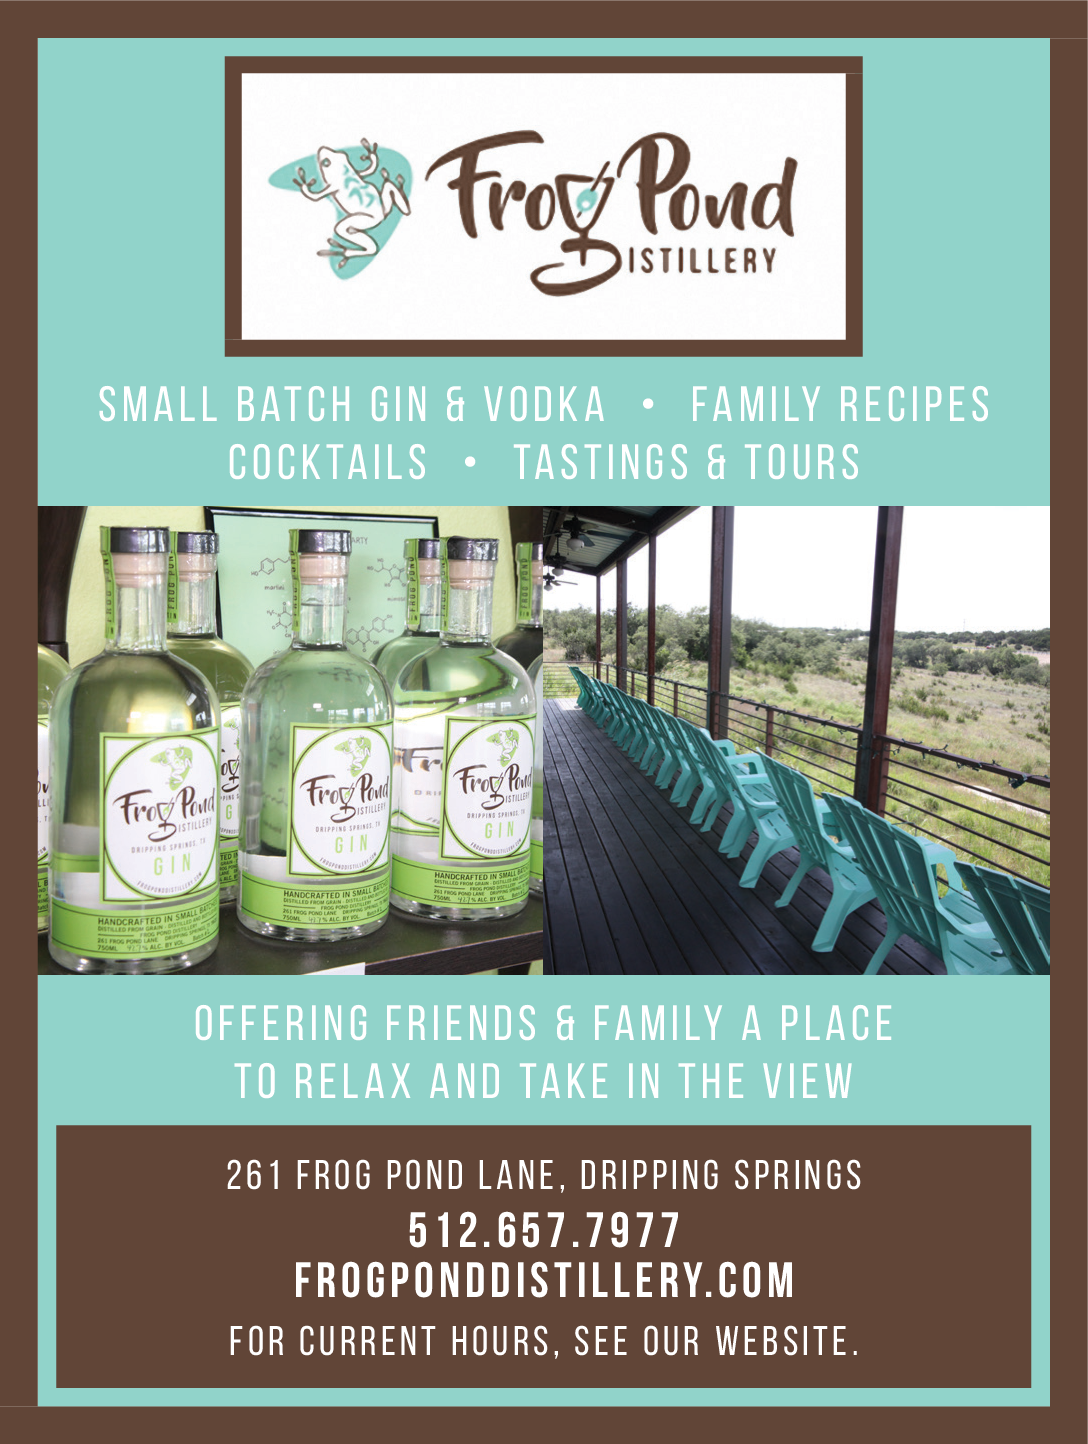 small batch gin and vodka in dripping springs tx wineries